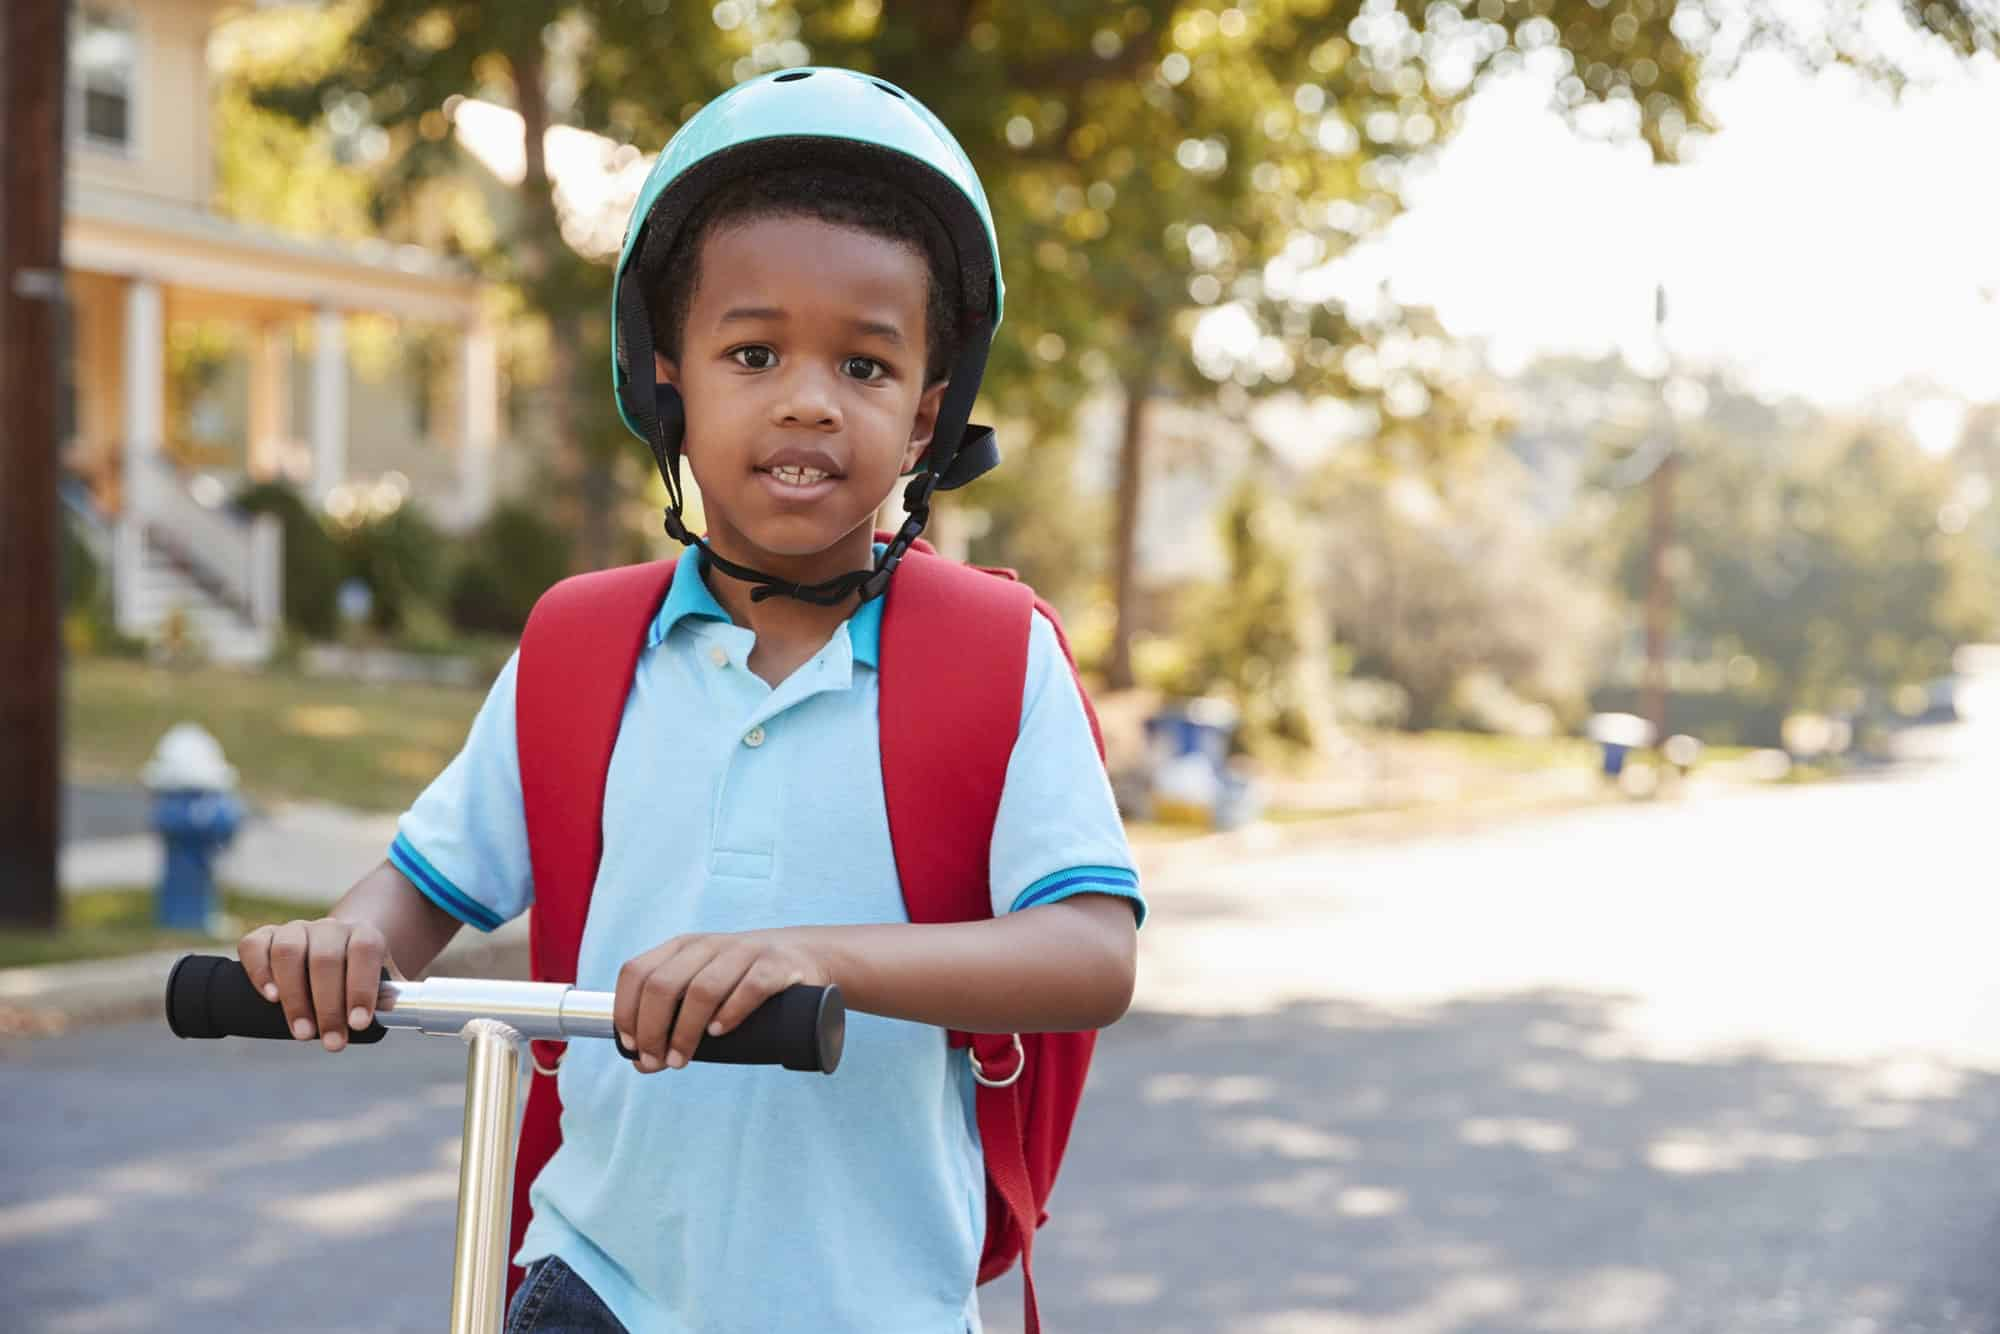 Young Boy Riding Scooter Along Street To School